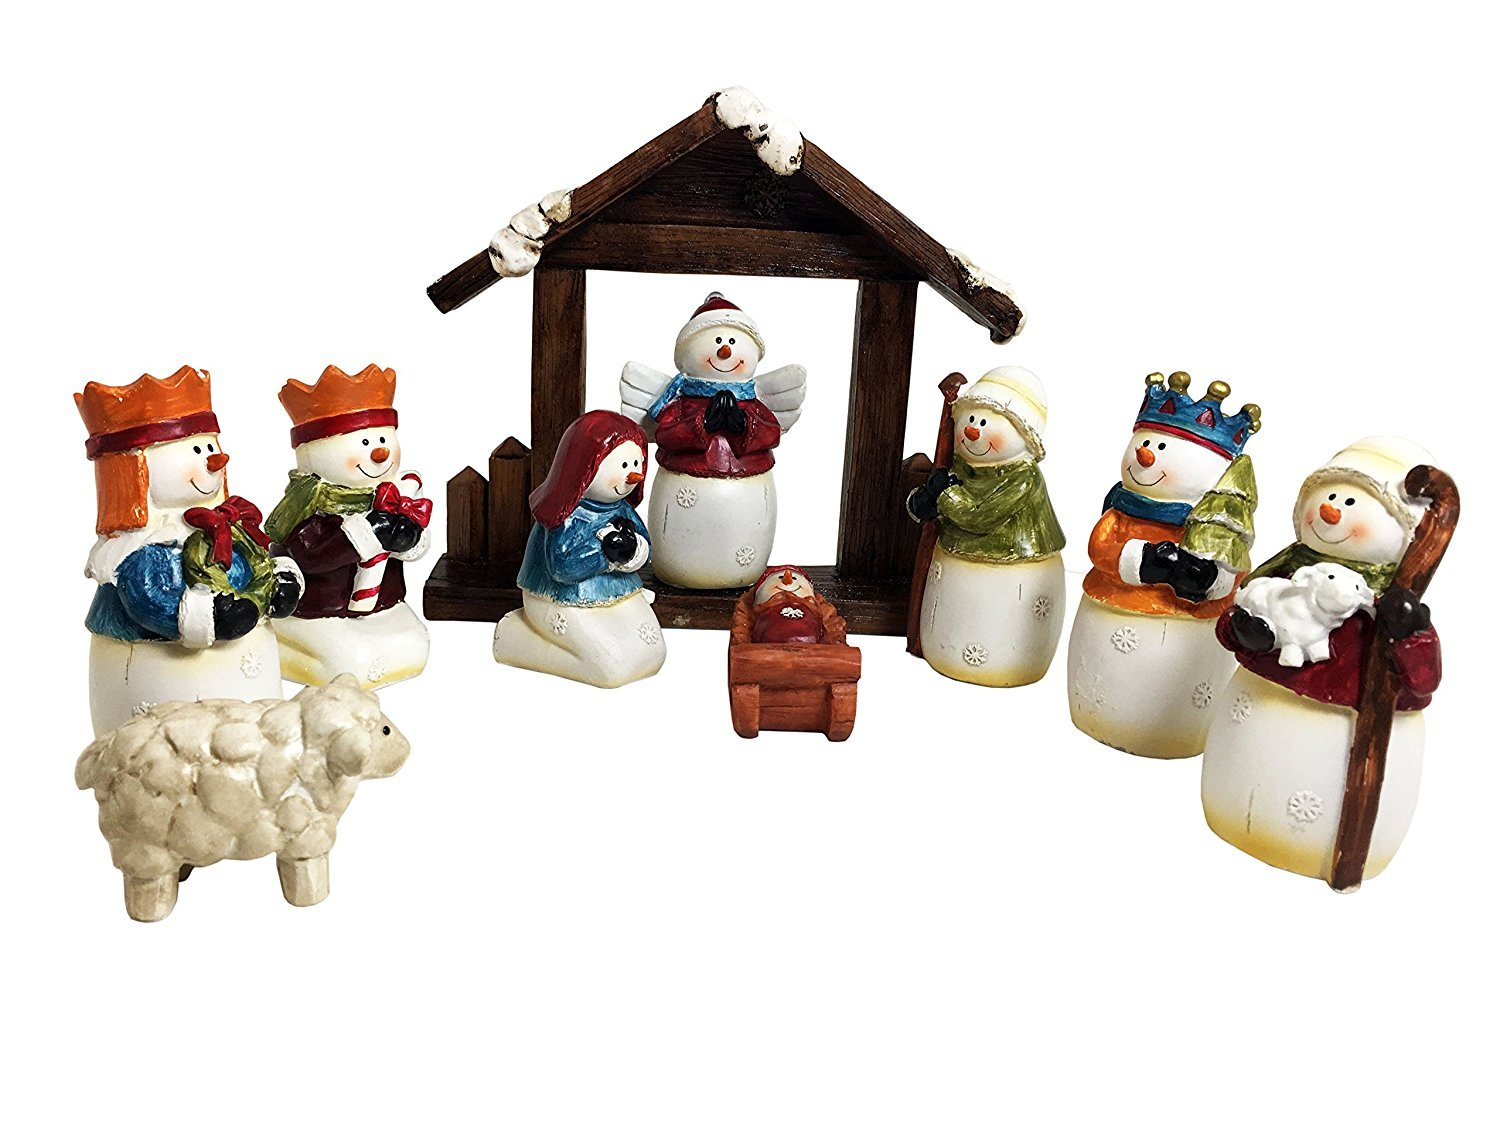 Snowman Nativity Scene 10 Piece Tabletop Creche Figurine Set DuraCasa